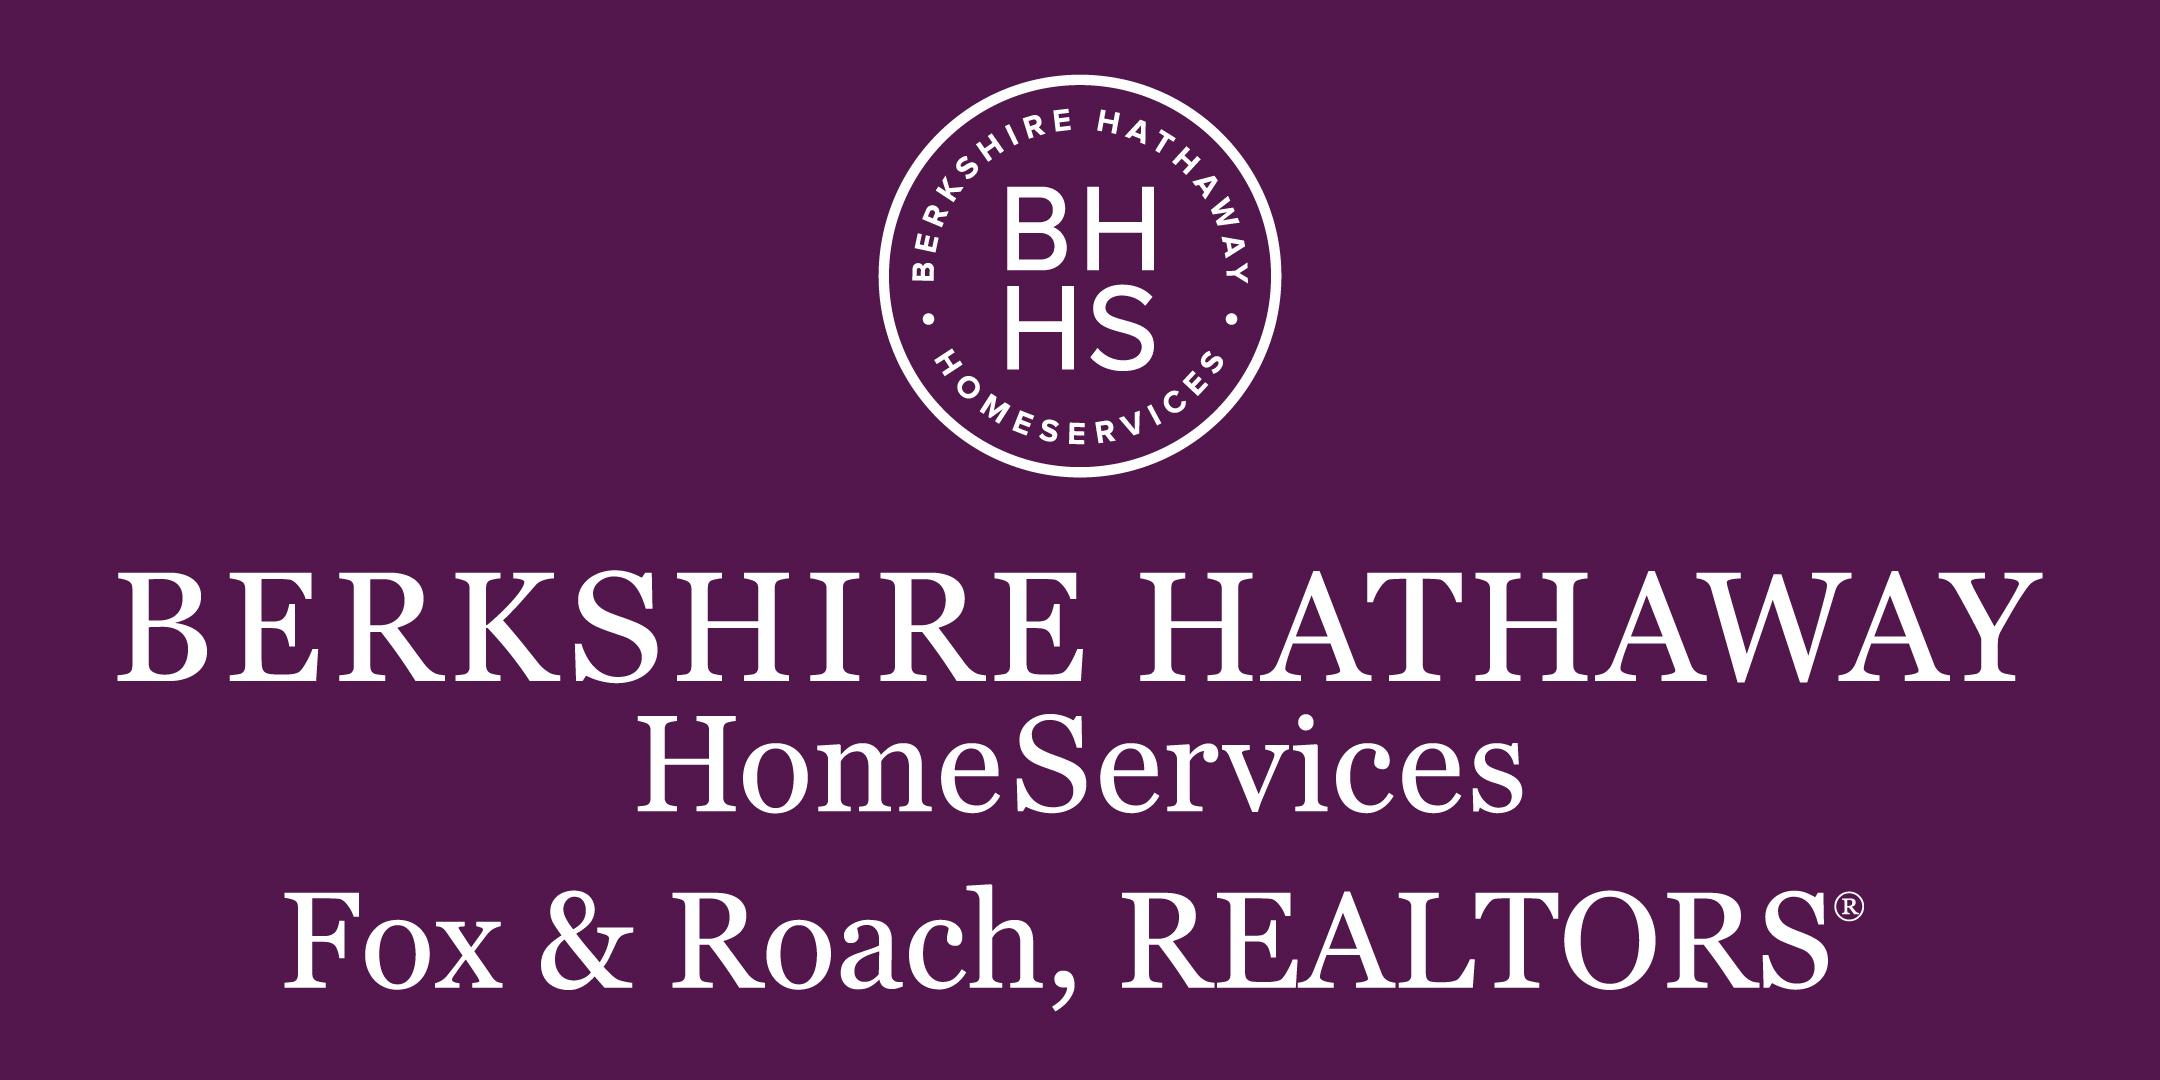 BEST New Agent Training, BHHS F&R Brandywine, Tuesday & Wednesday afternoons : 13 classes in 7 weeks